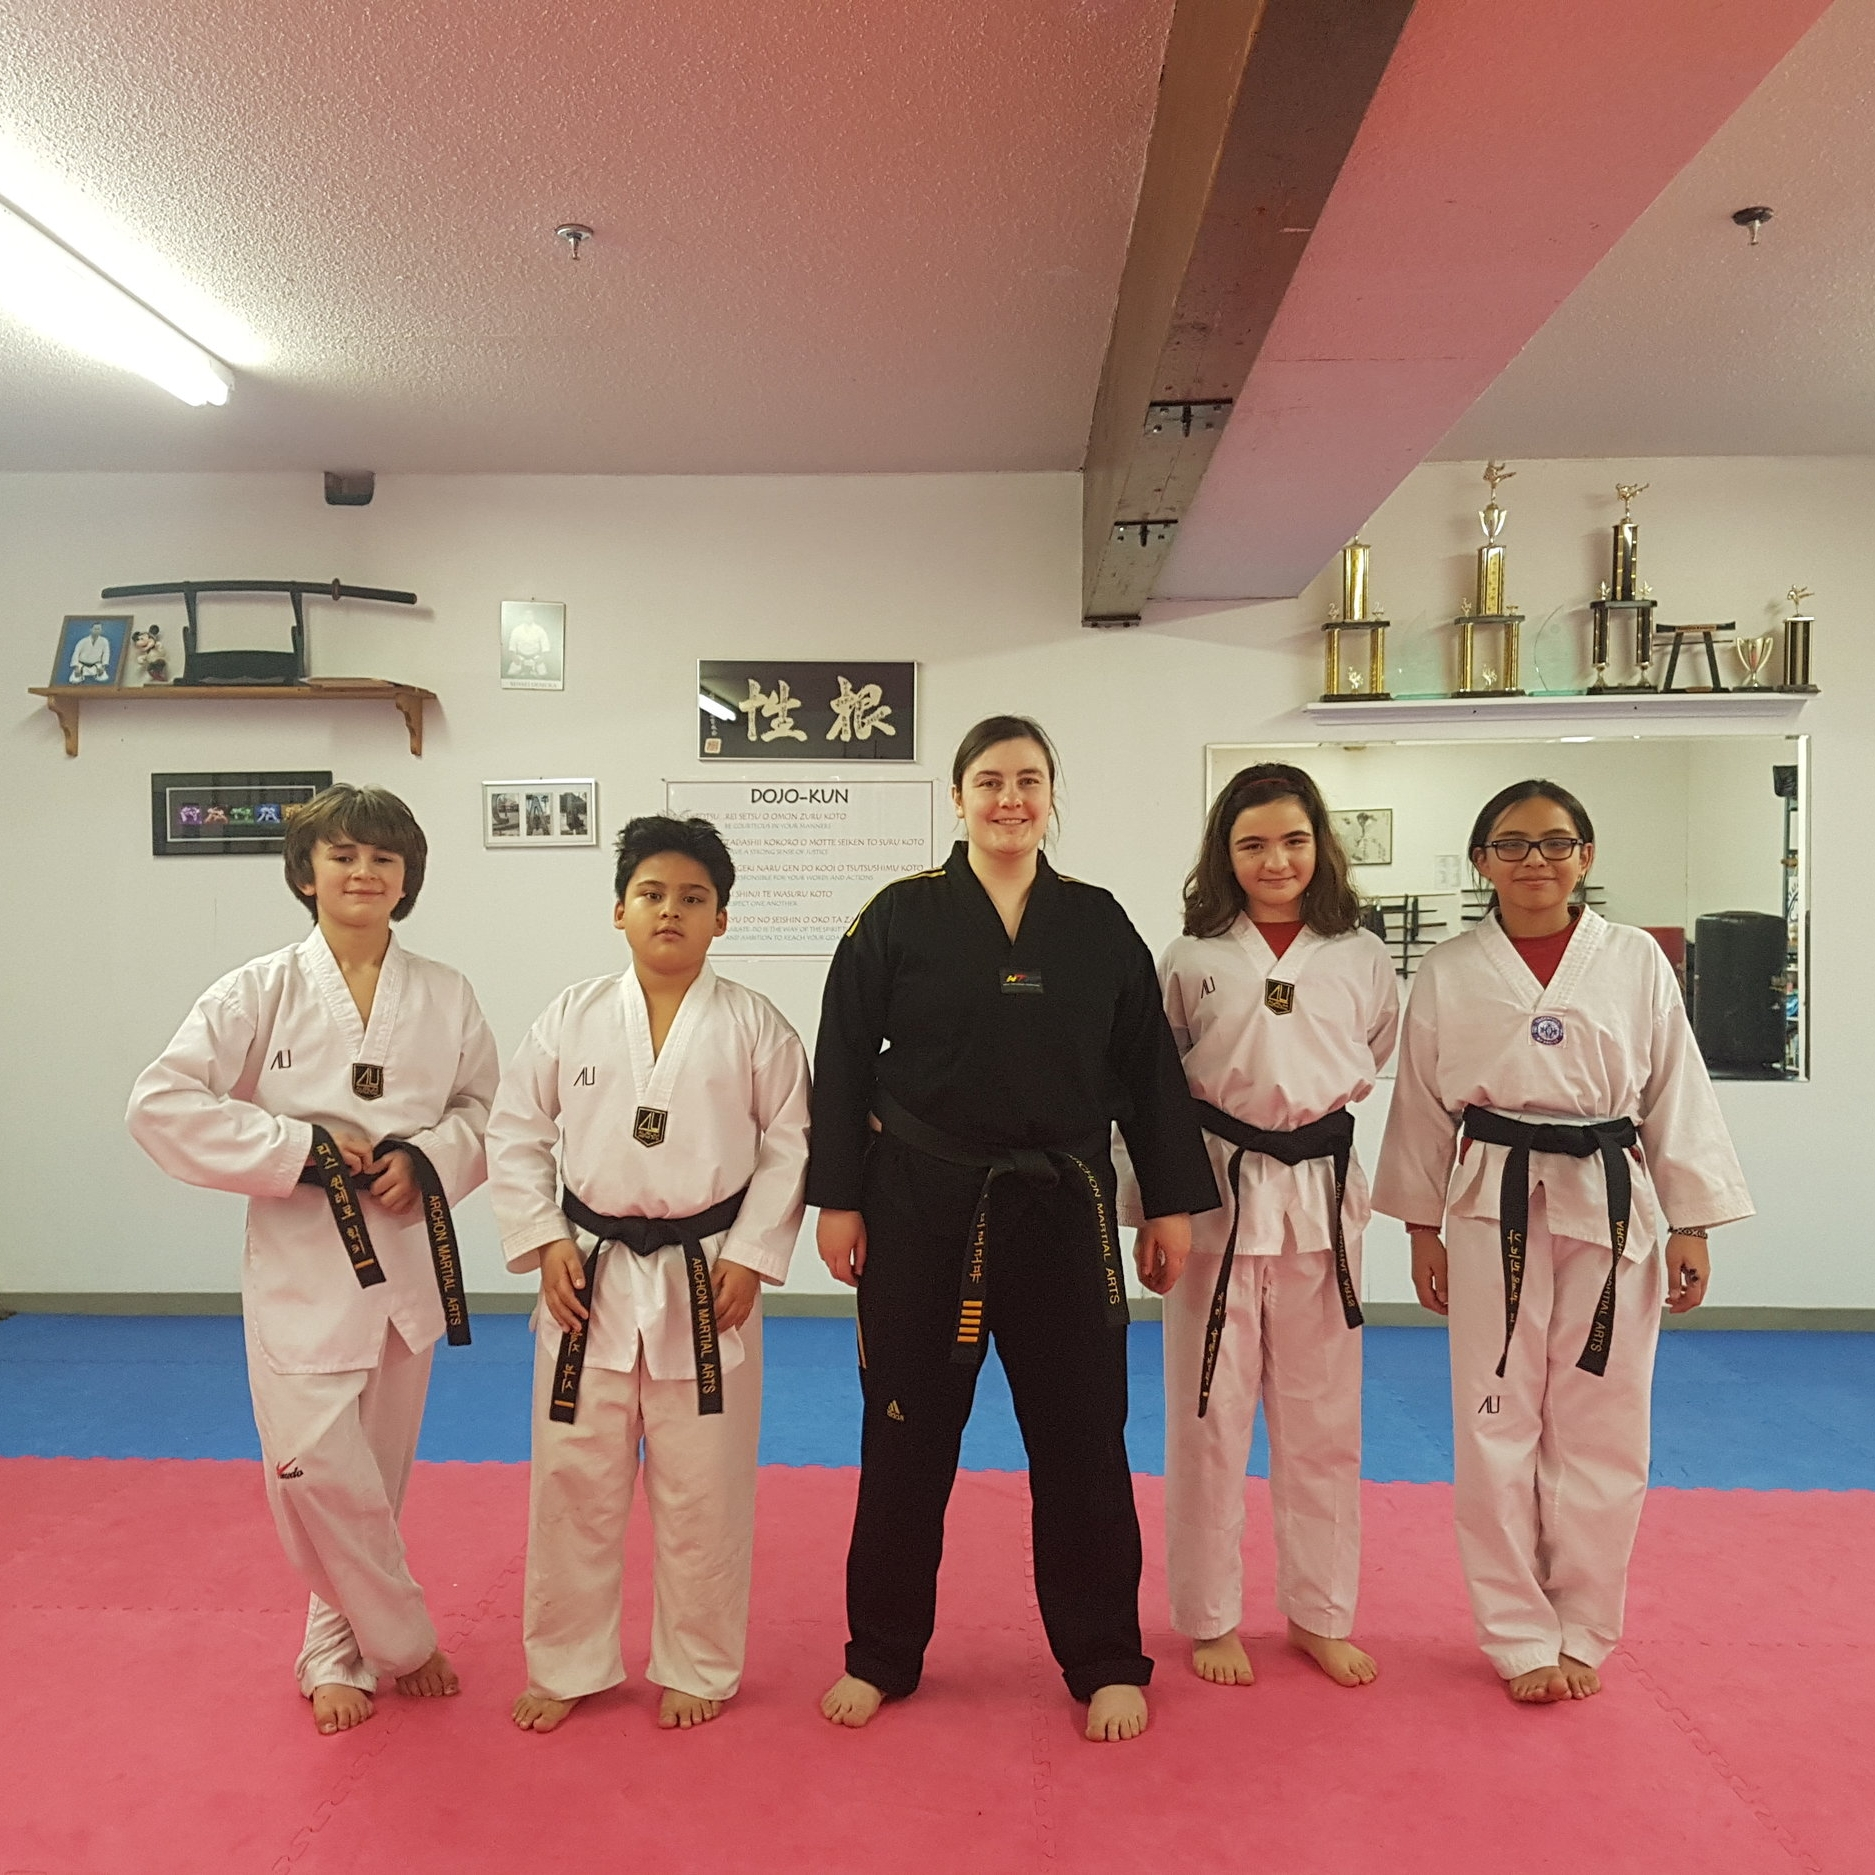 Black Belt Training - Sun 11:00-12:00After mastering the basics, our black belts get additional training to do stunts, aerial kicks, and tumbling. Students will continue to train with a number of weapons, with a focus on combining weapons techniques with kicking combinations.